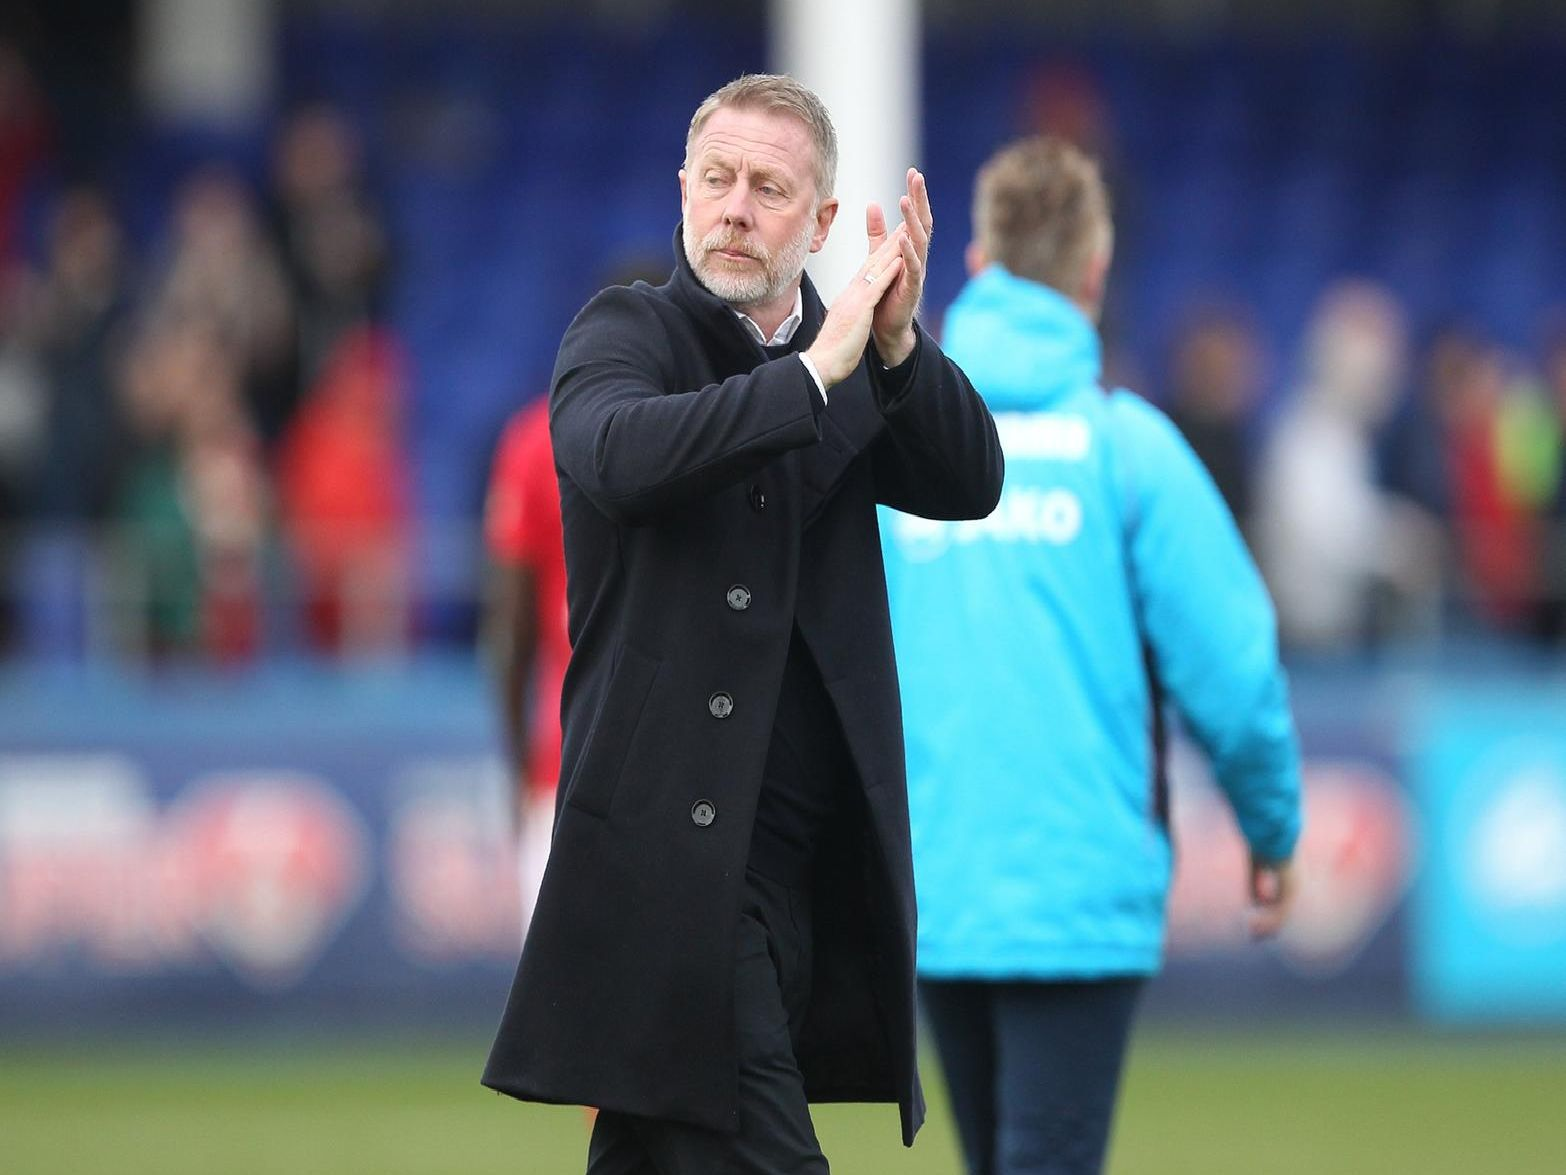 The key contract decisions fans want Craig Hignett to make at Hartlepool United